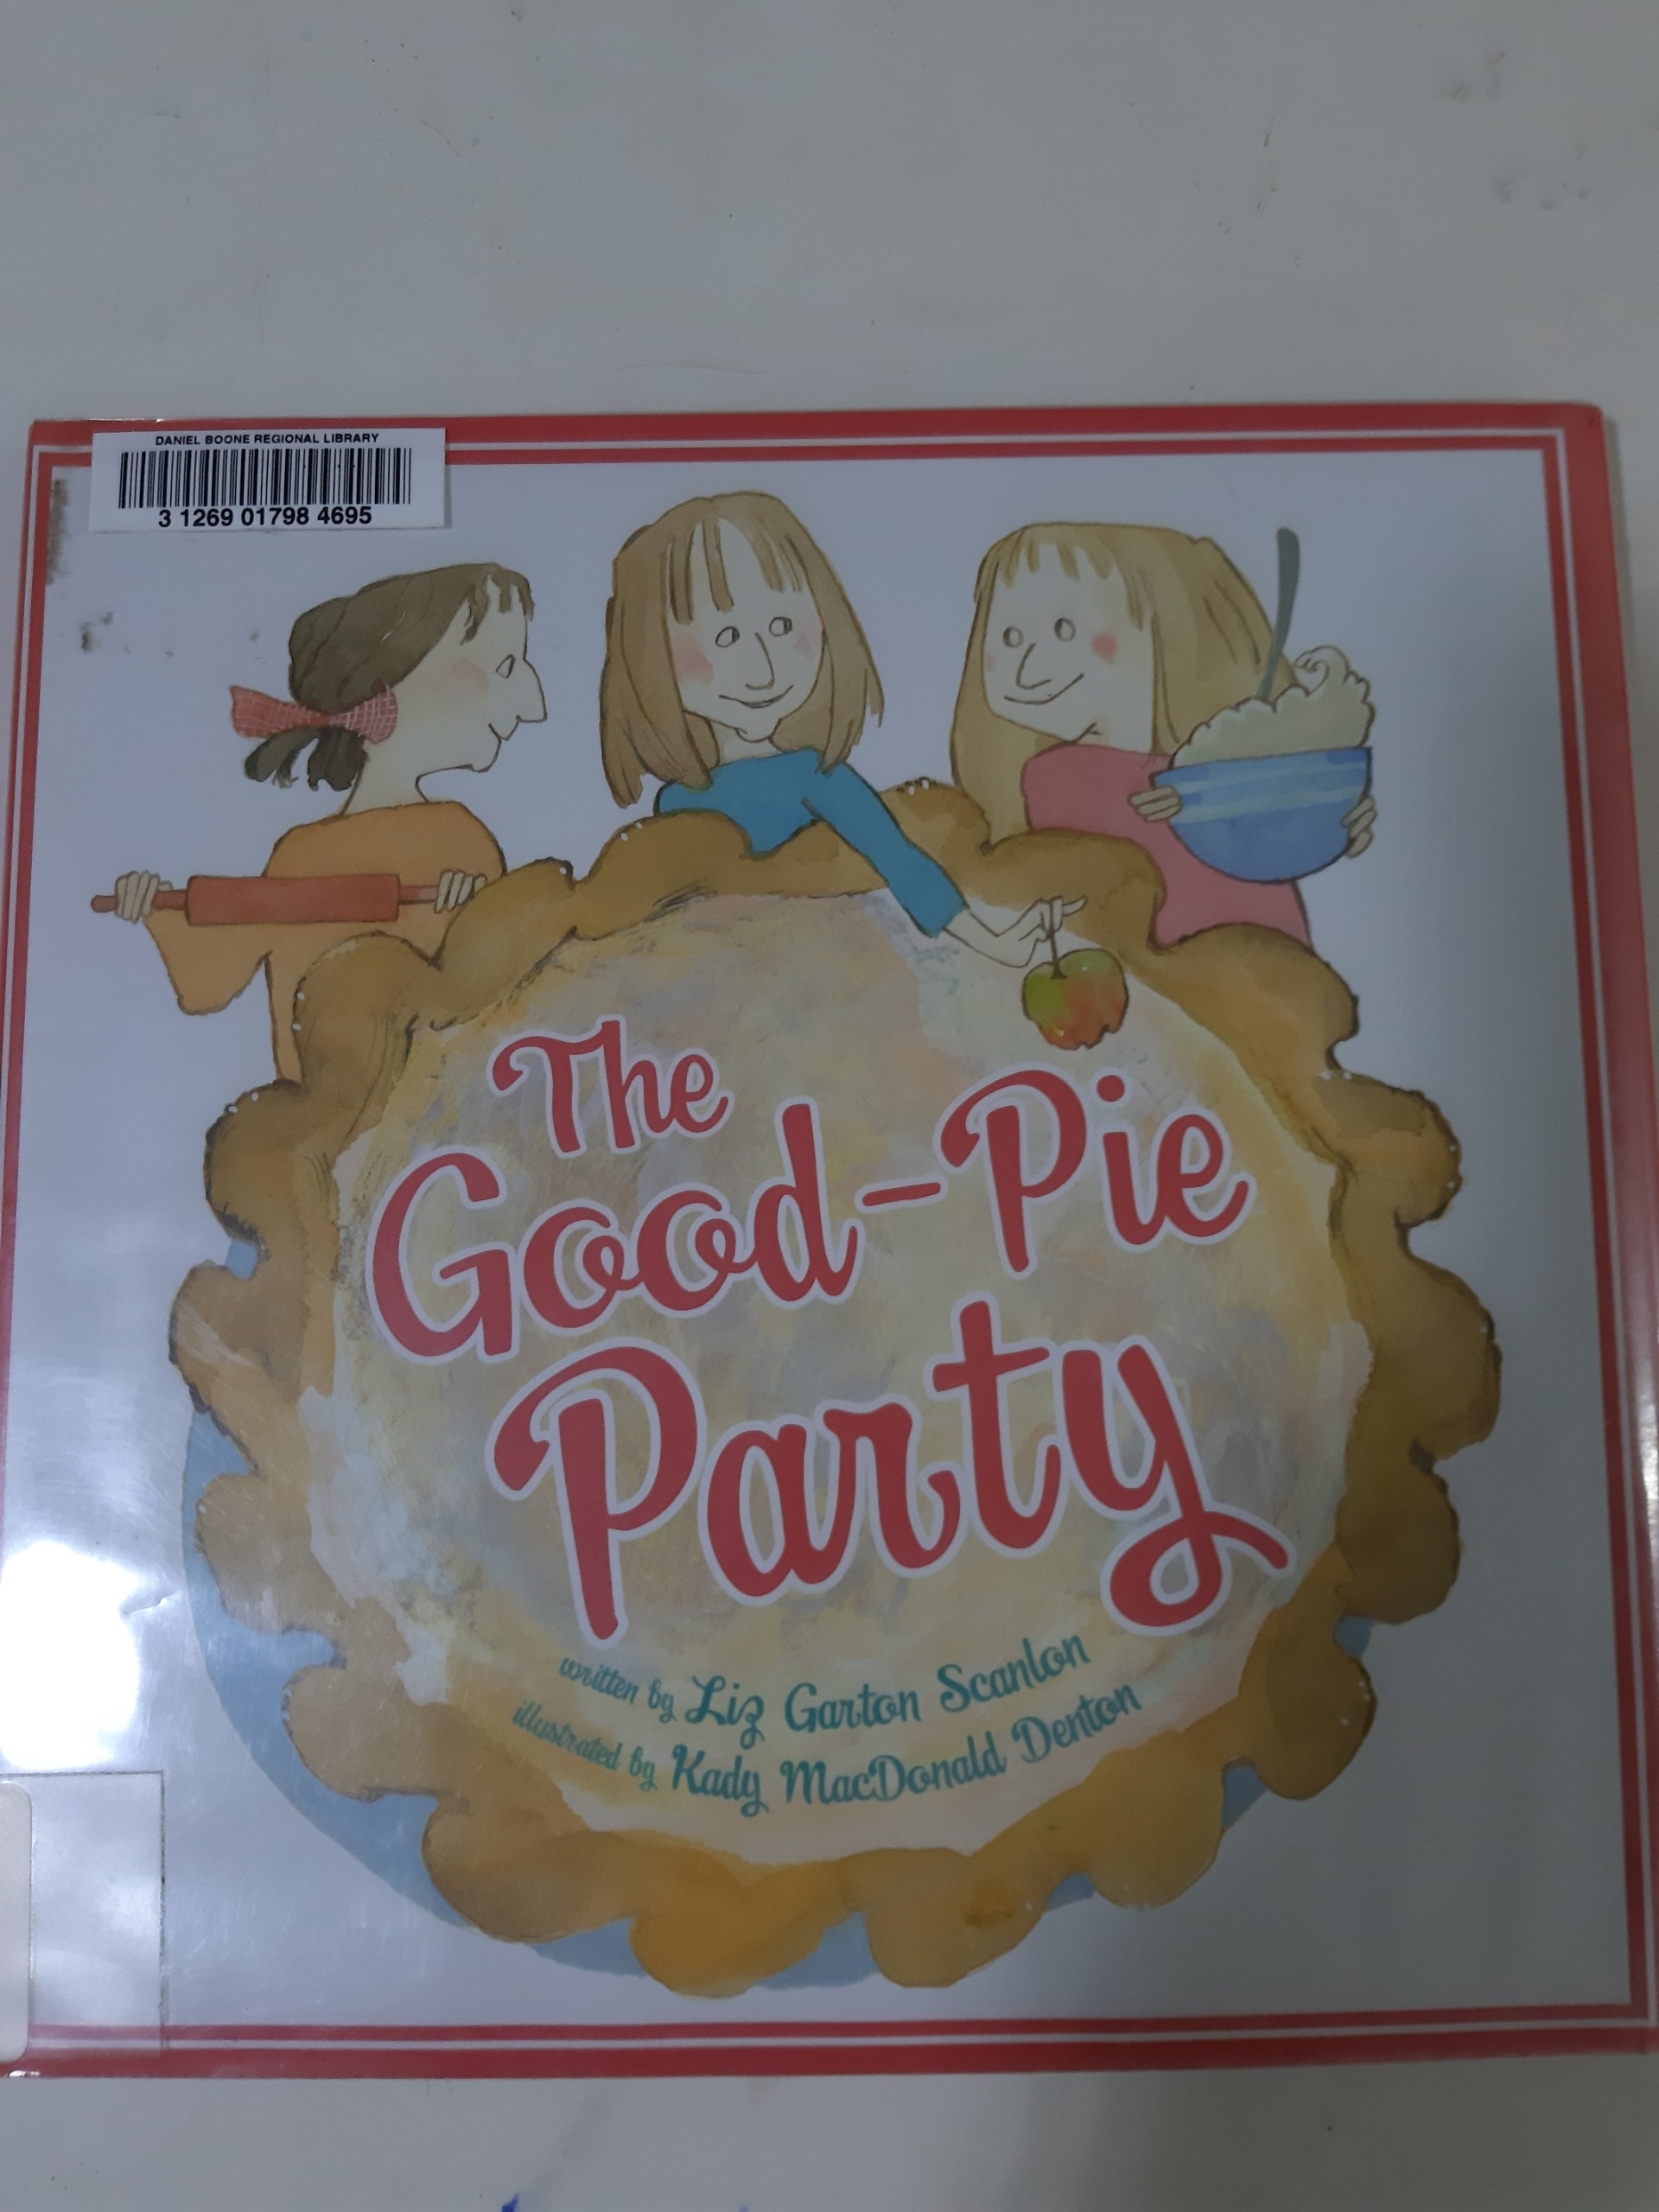 The good- pie party